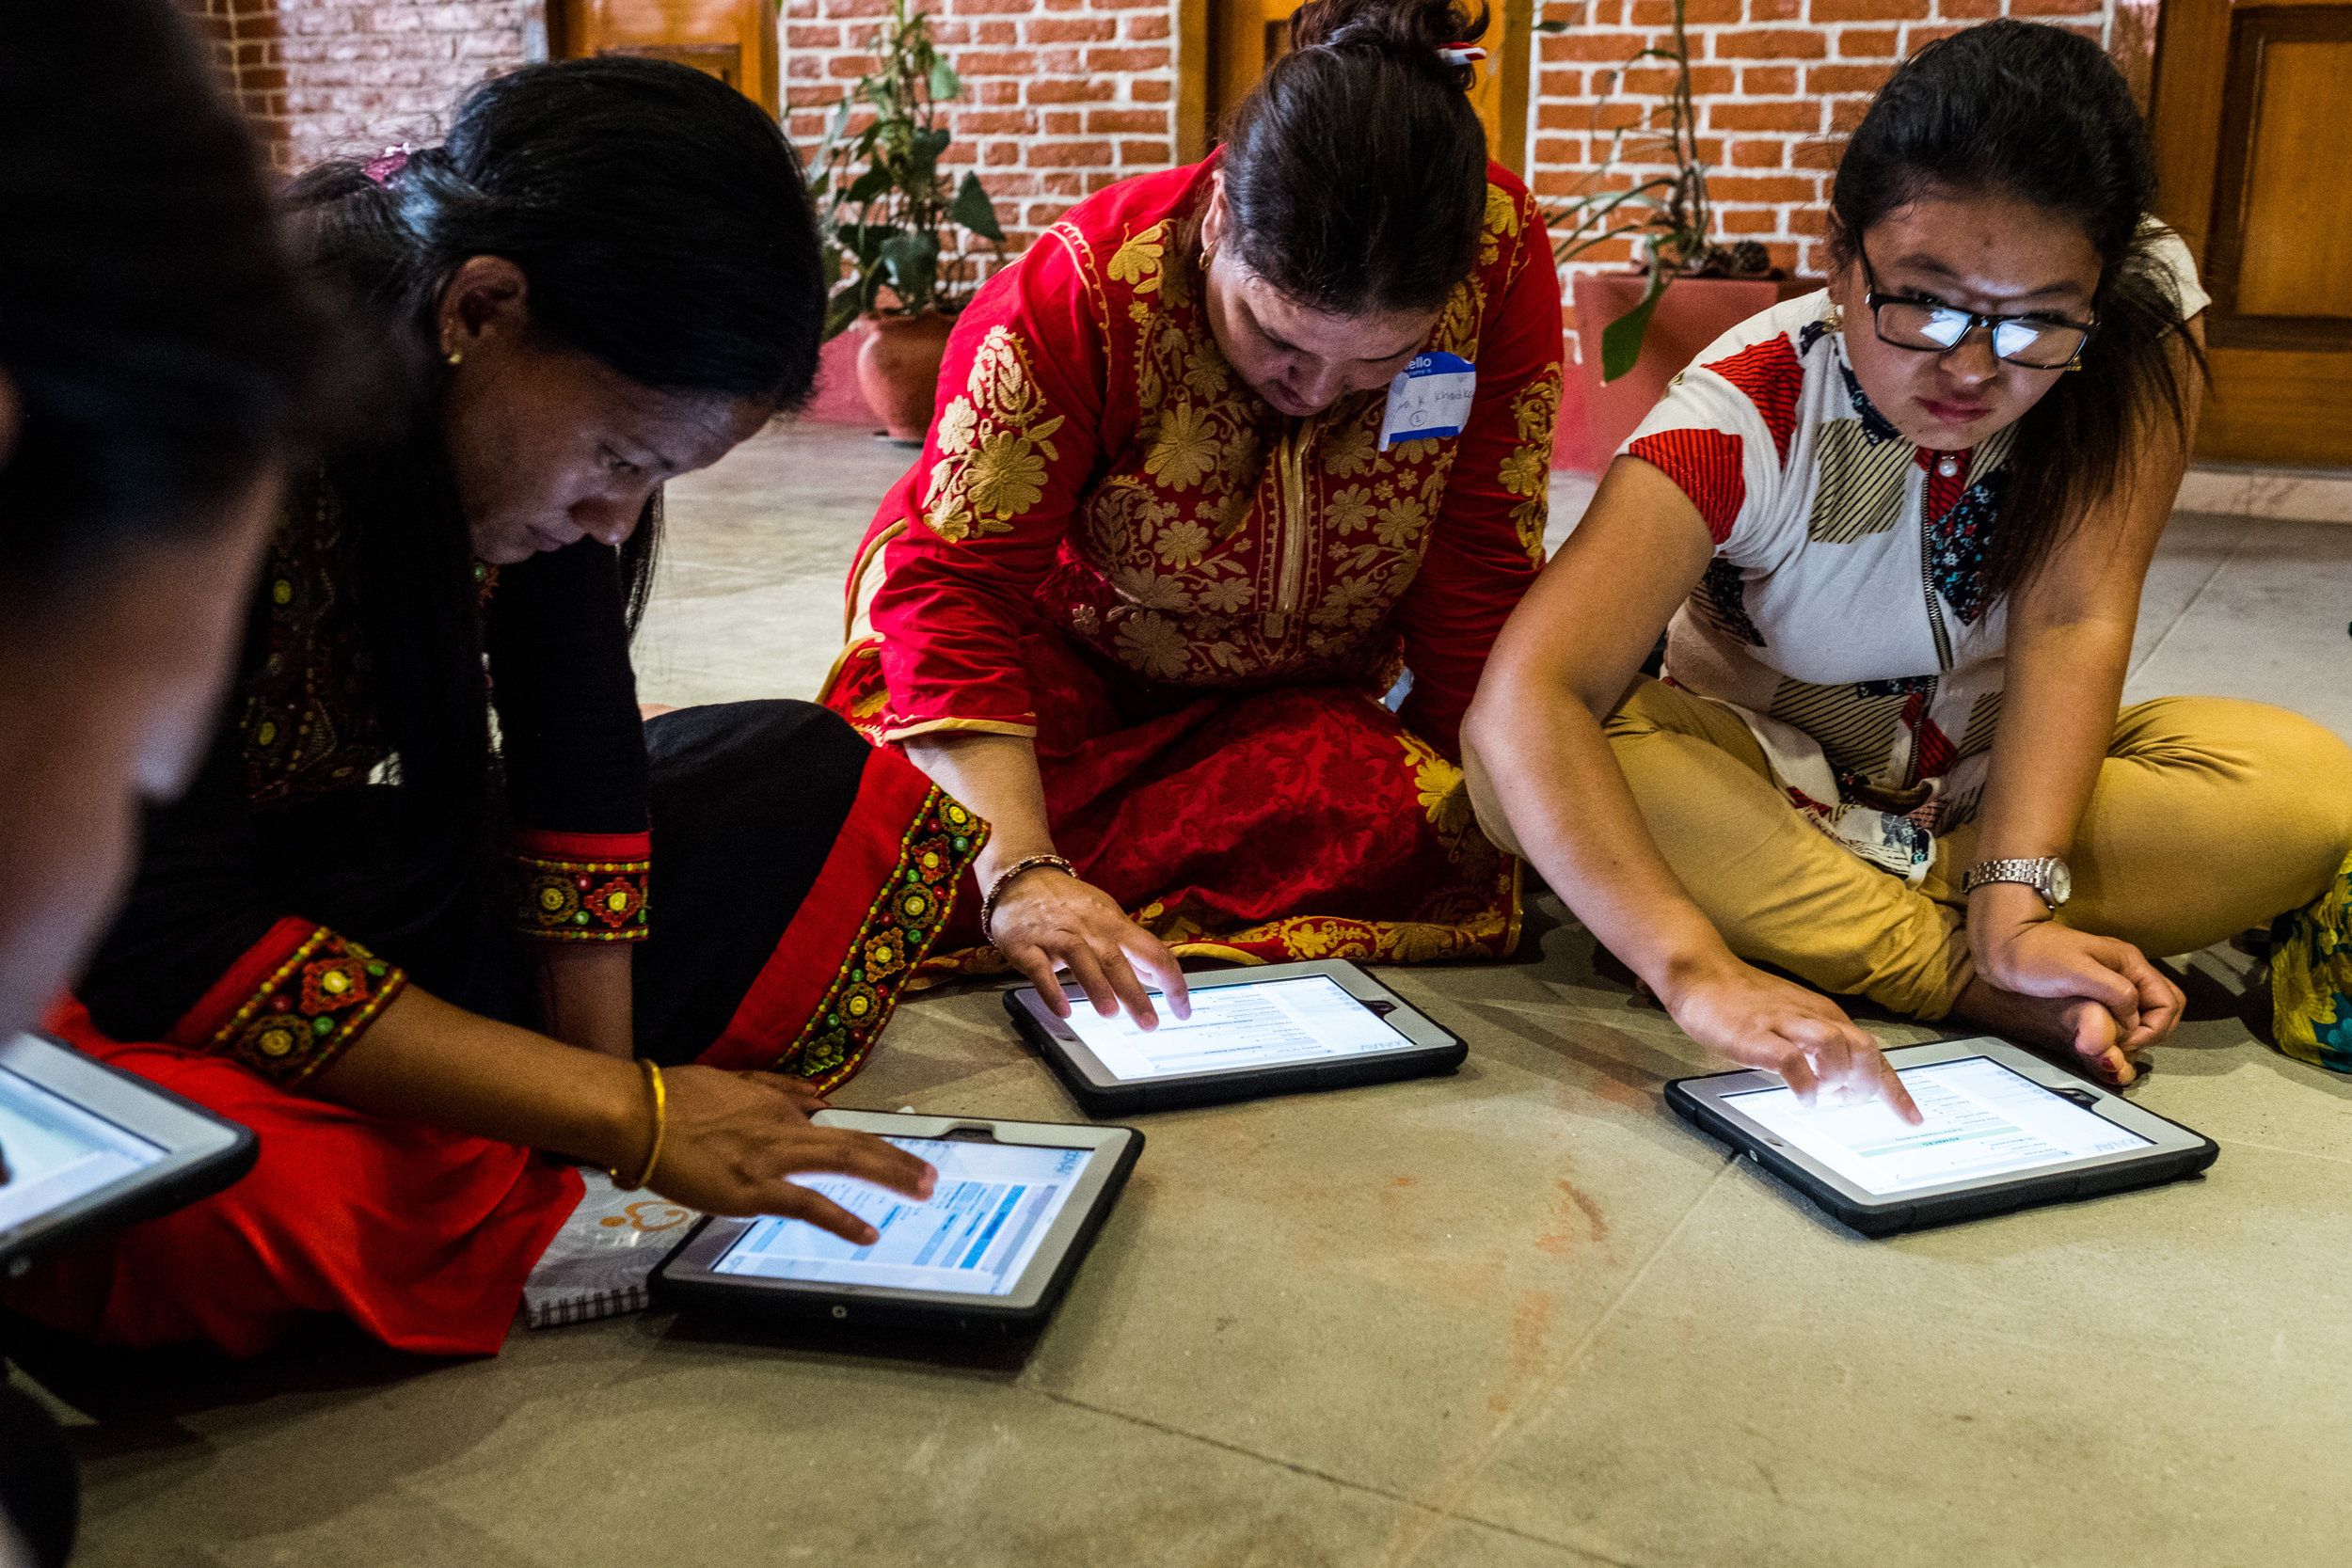 Skilled Birth Attendants (SBAs) in Nepal, continue their education using 7D Imaging's obNAV™ innovative software, accelerating the learning process. The repurposed donated, pre-owned iPads can be geotracked, creating connections around the globe.